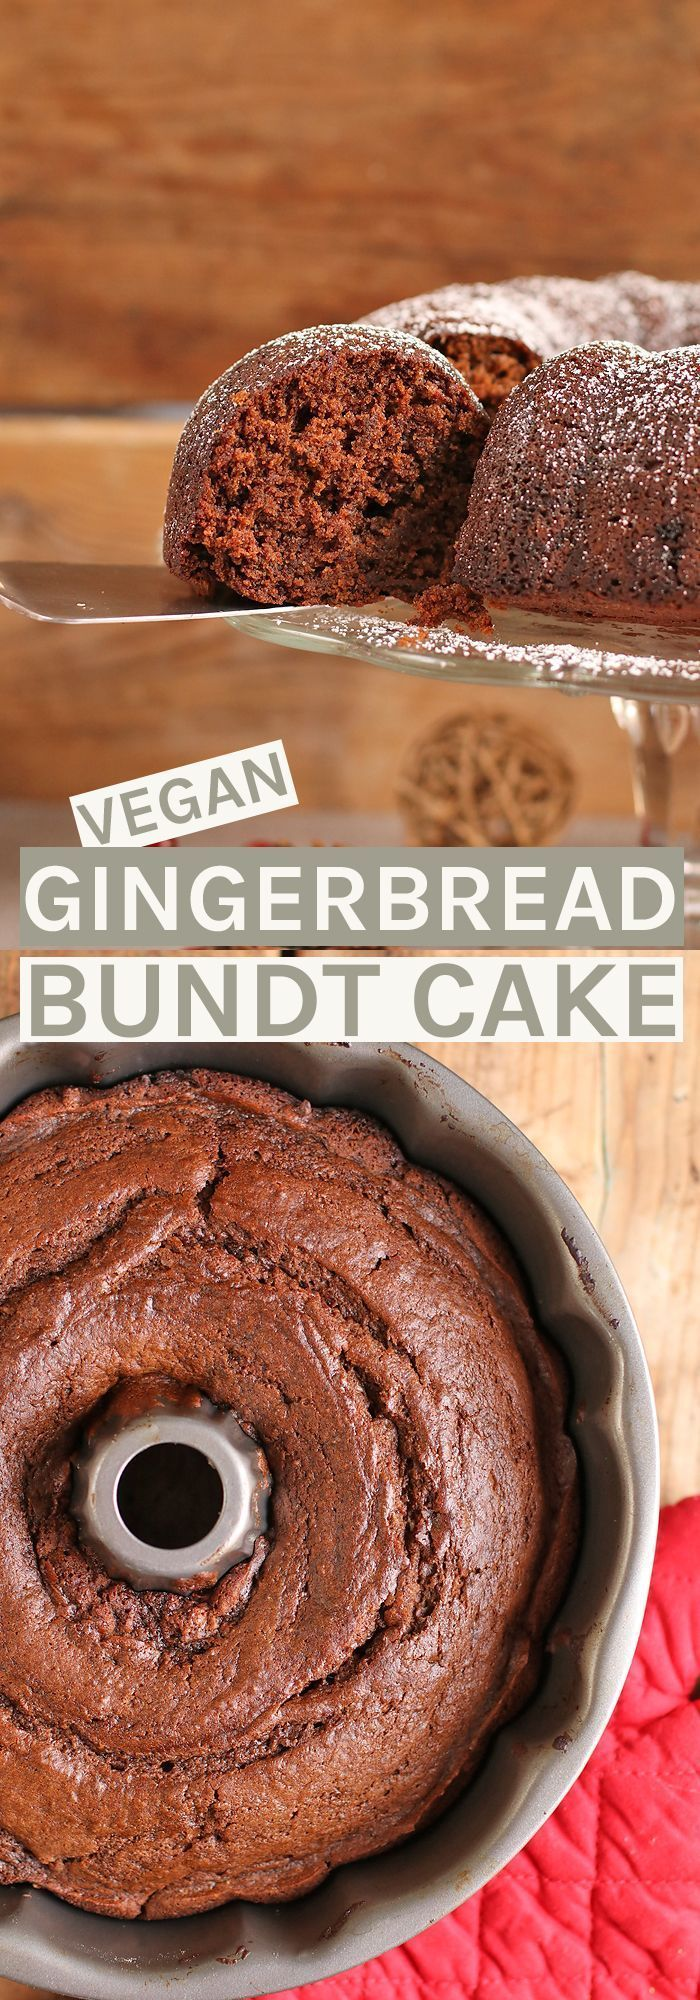 This seasonal vegan Gingerbread Bundt Cake is the perfect treat to serve at your holiday parties this year. Click the picture for the full recipe. #holidayparties